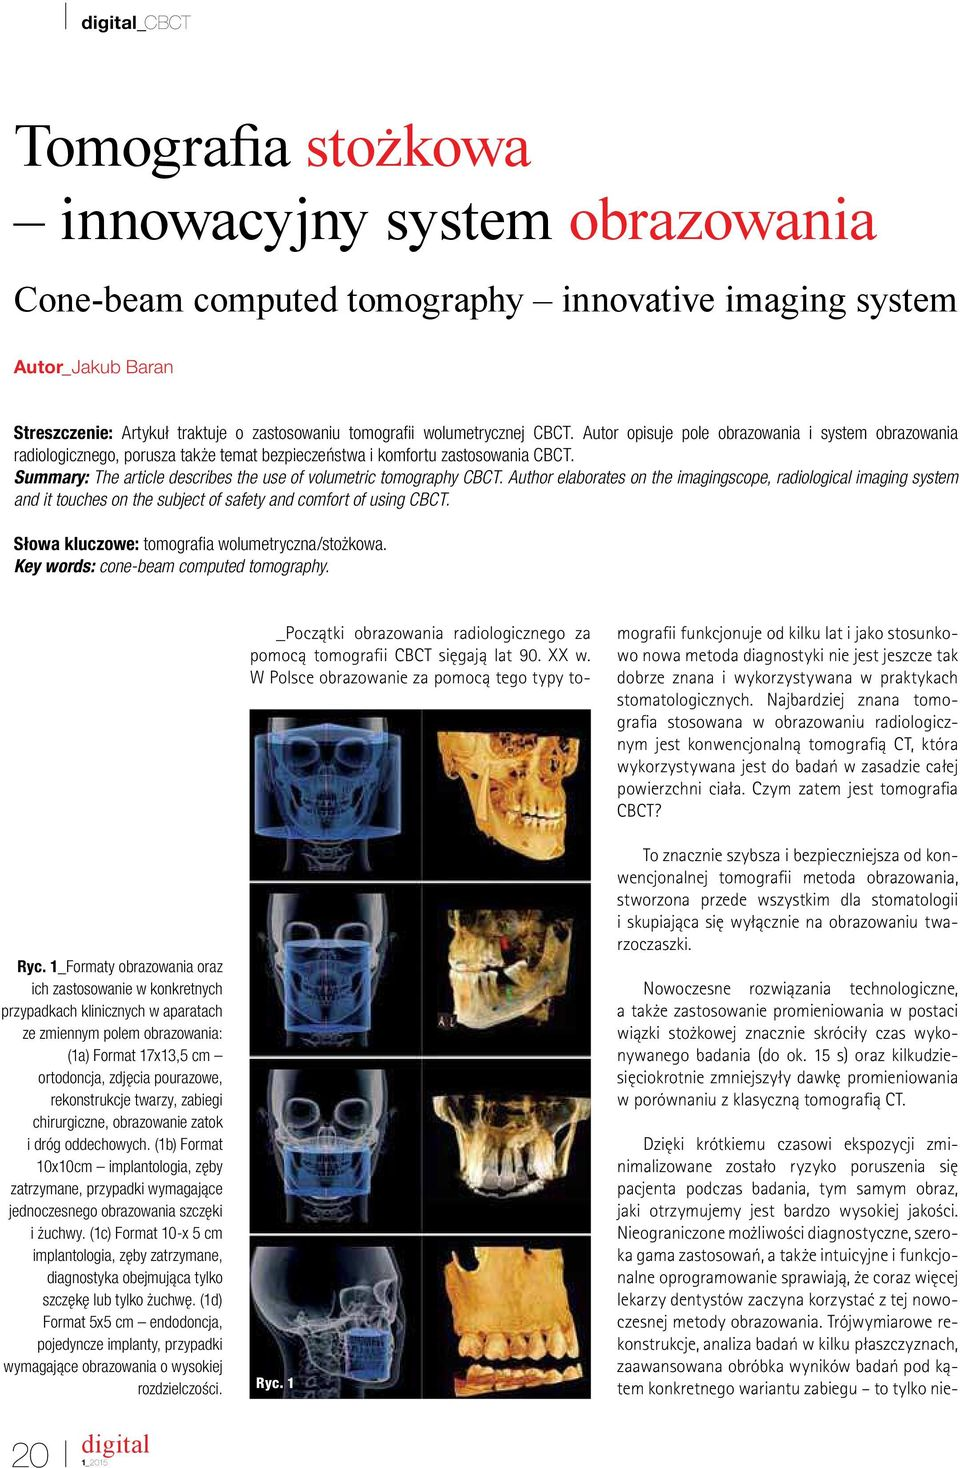 Summary: The article describes the use of volumetric tomography CBCT.